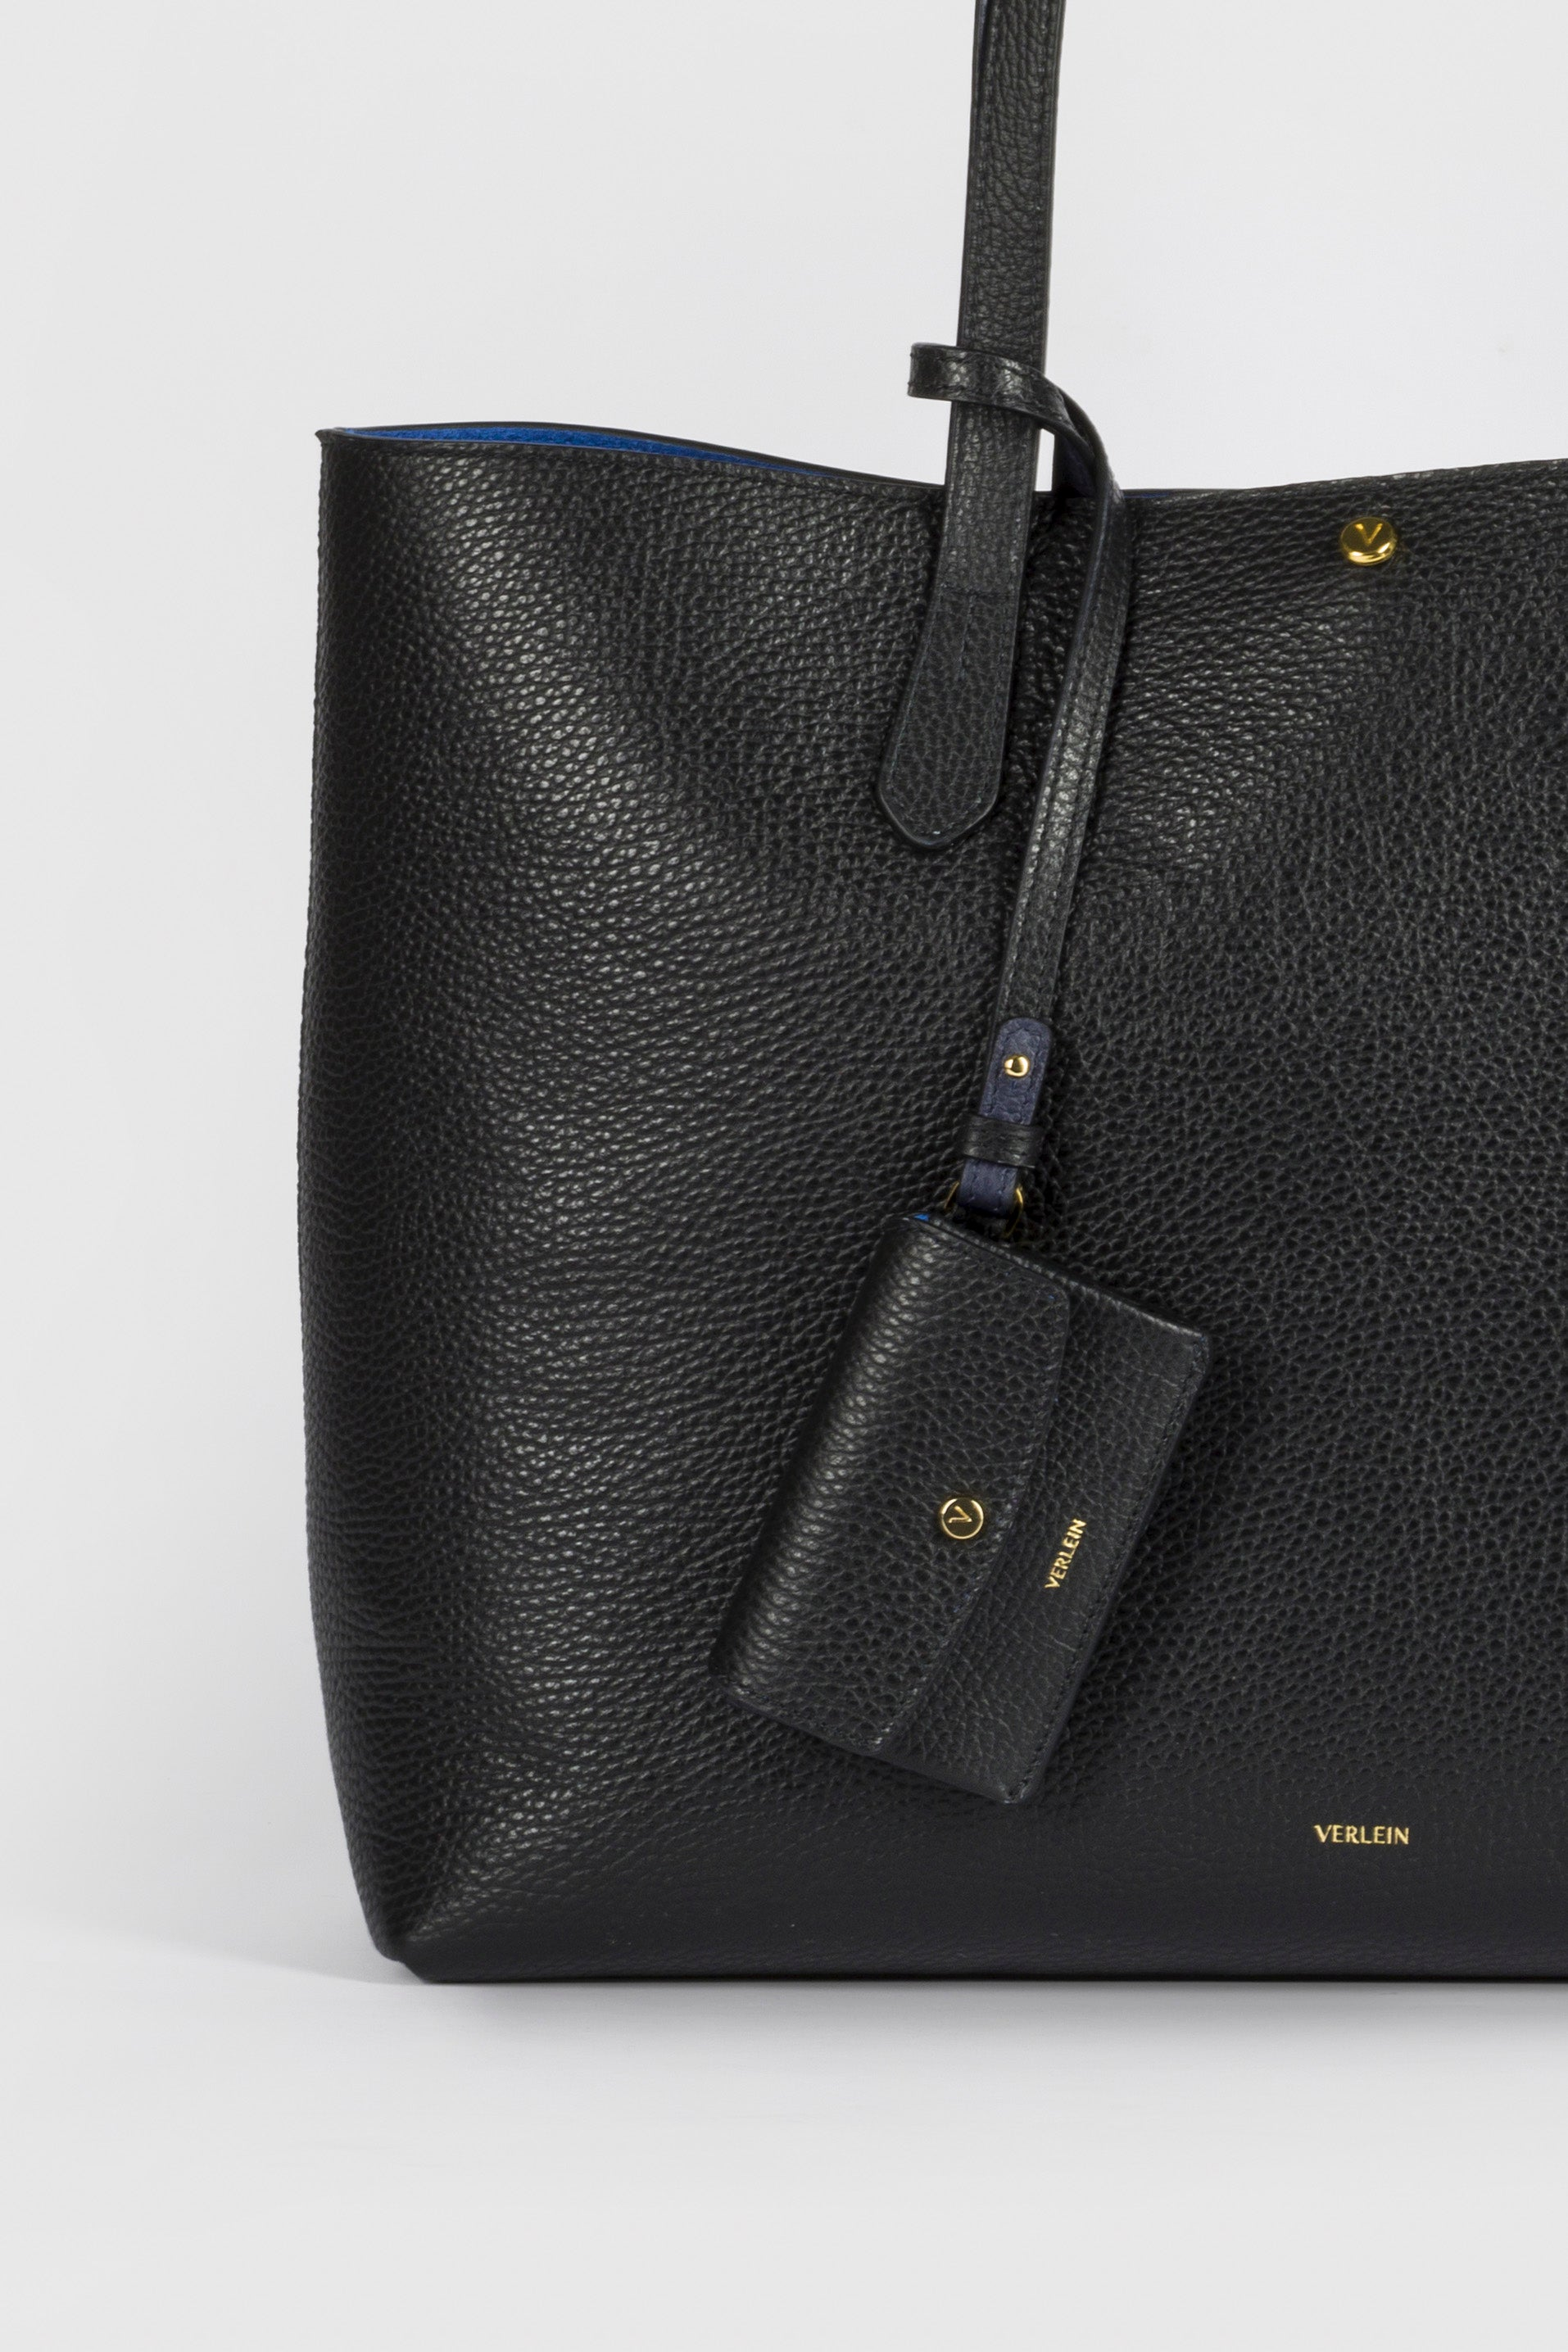 Jet Black Julia Tote Bag, with Inés Coinpurse, from Verlein